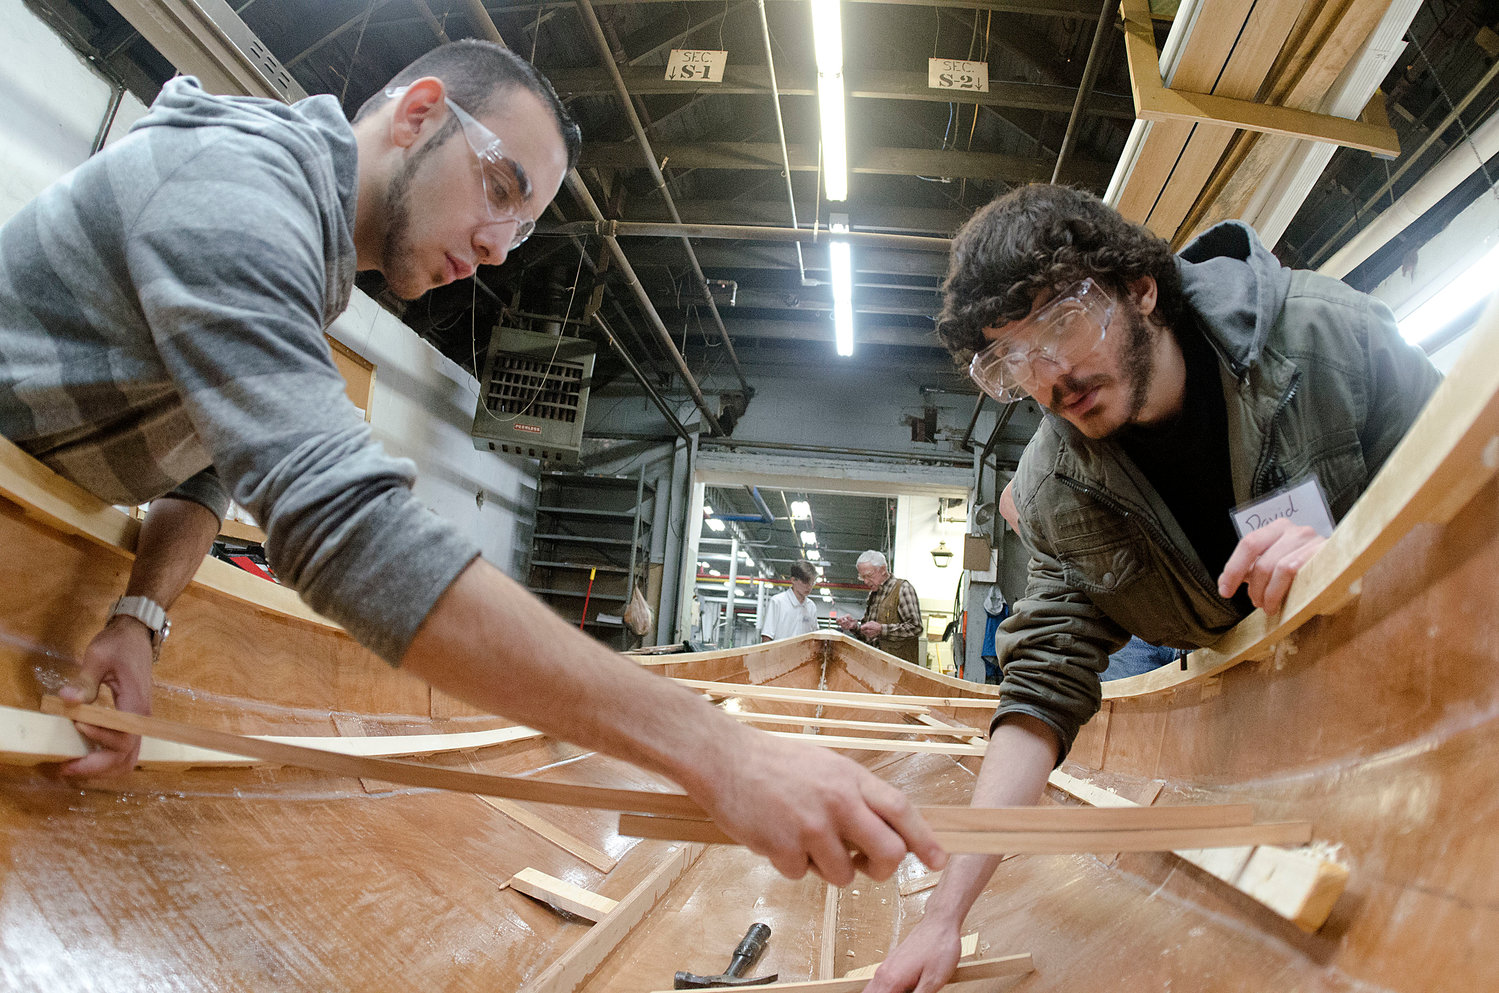 The Dharma Voyage student boatbuilding and rowing program is among this year's grant winners. Here Westport High School students work on a rowing boat.